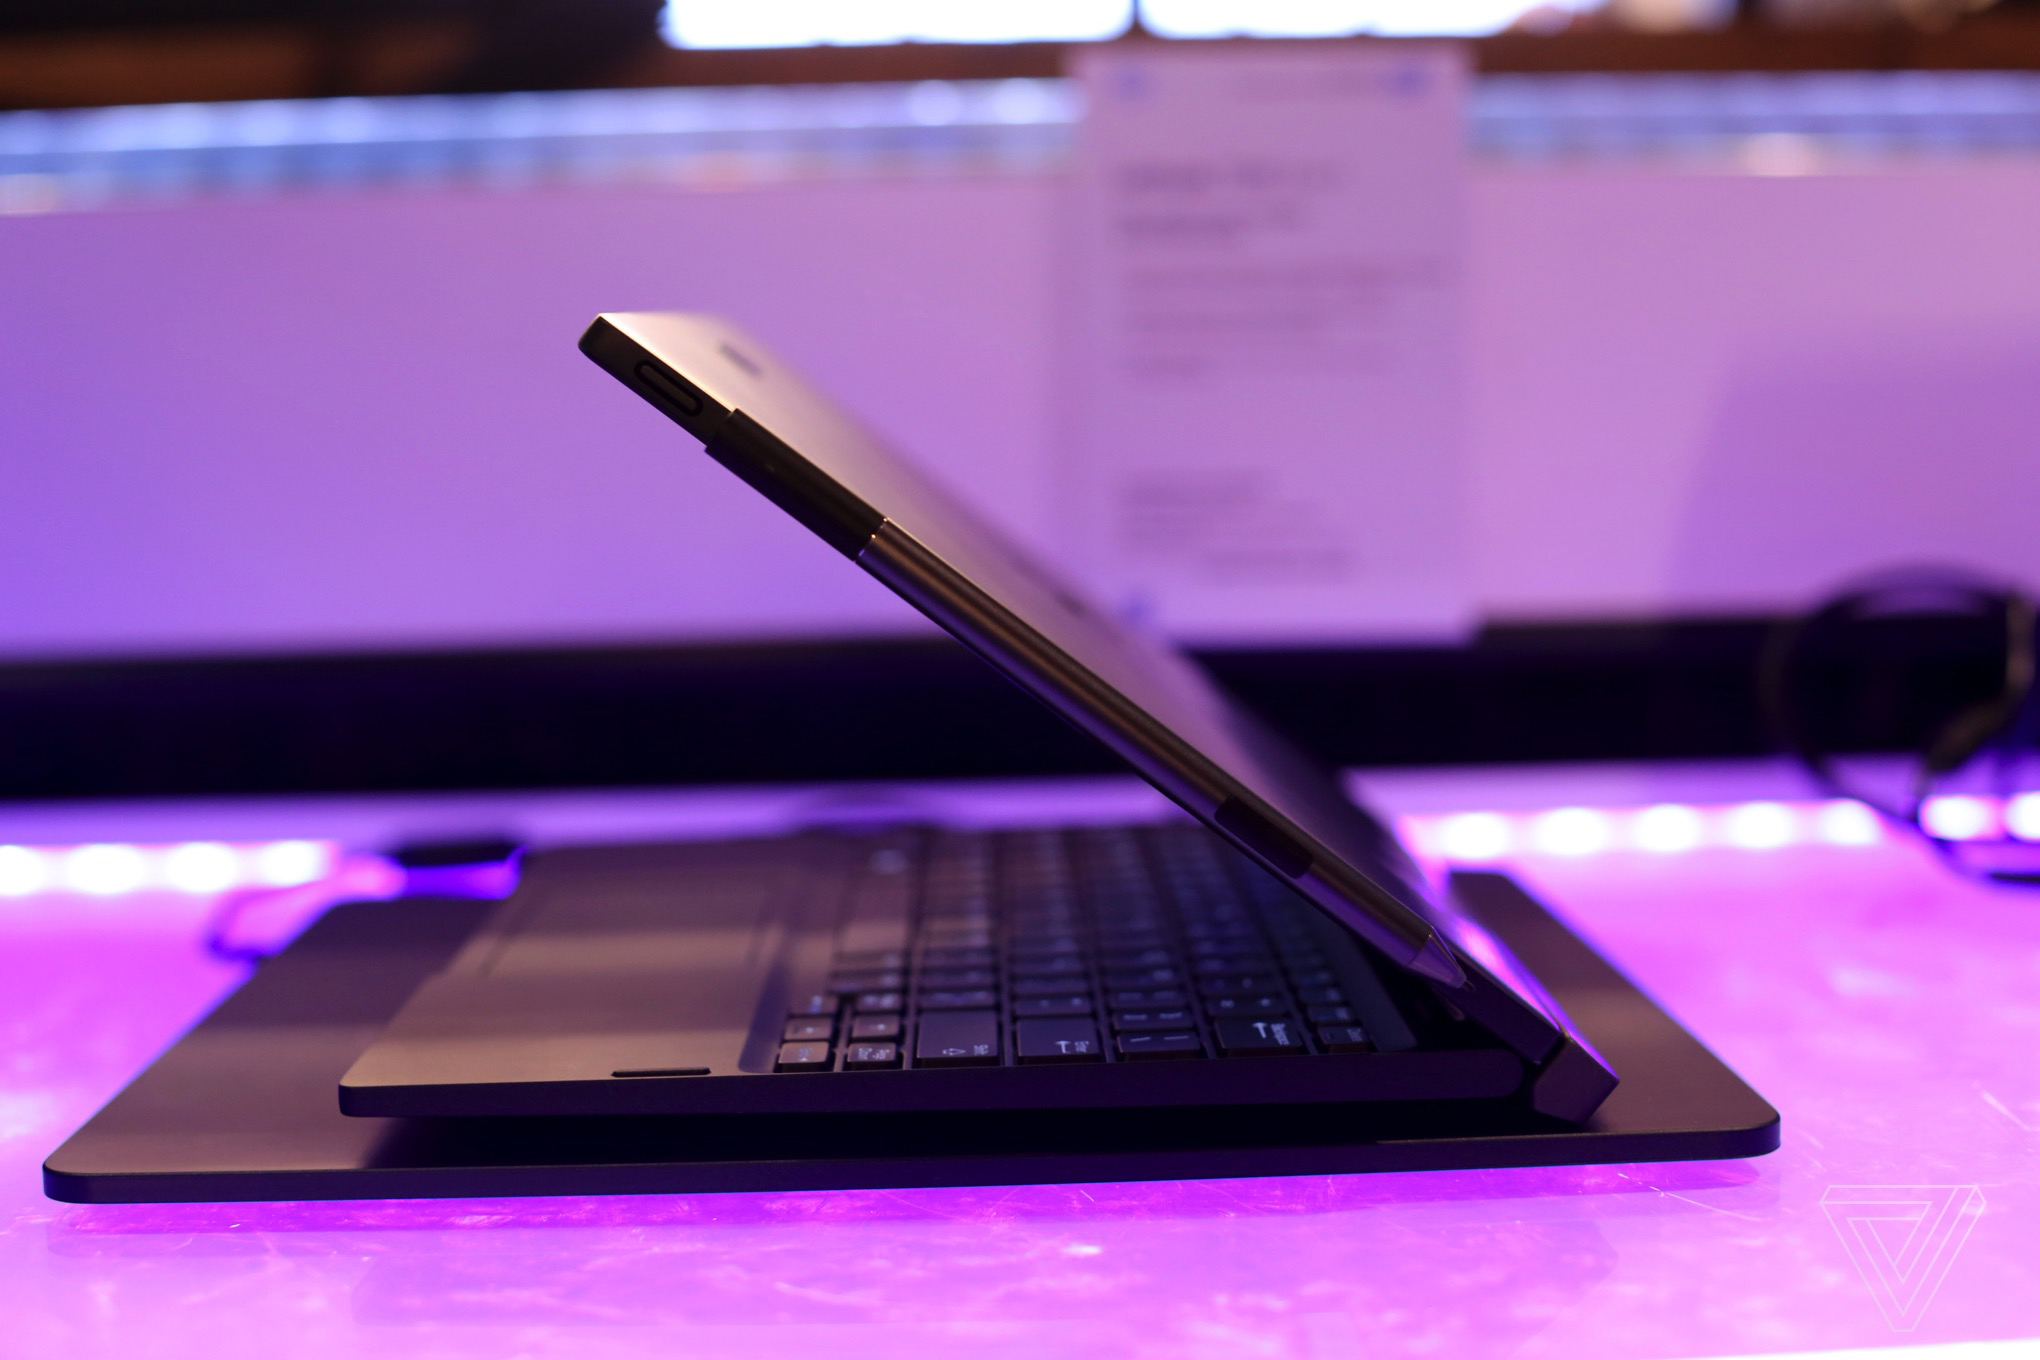 This Dell 2-in-1 laptop can wirelessly charge through its